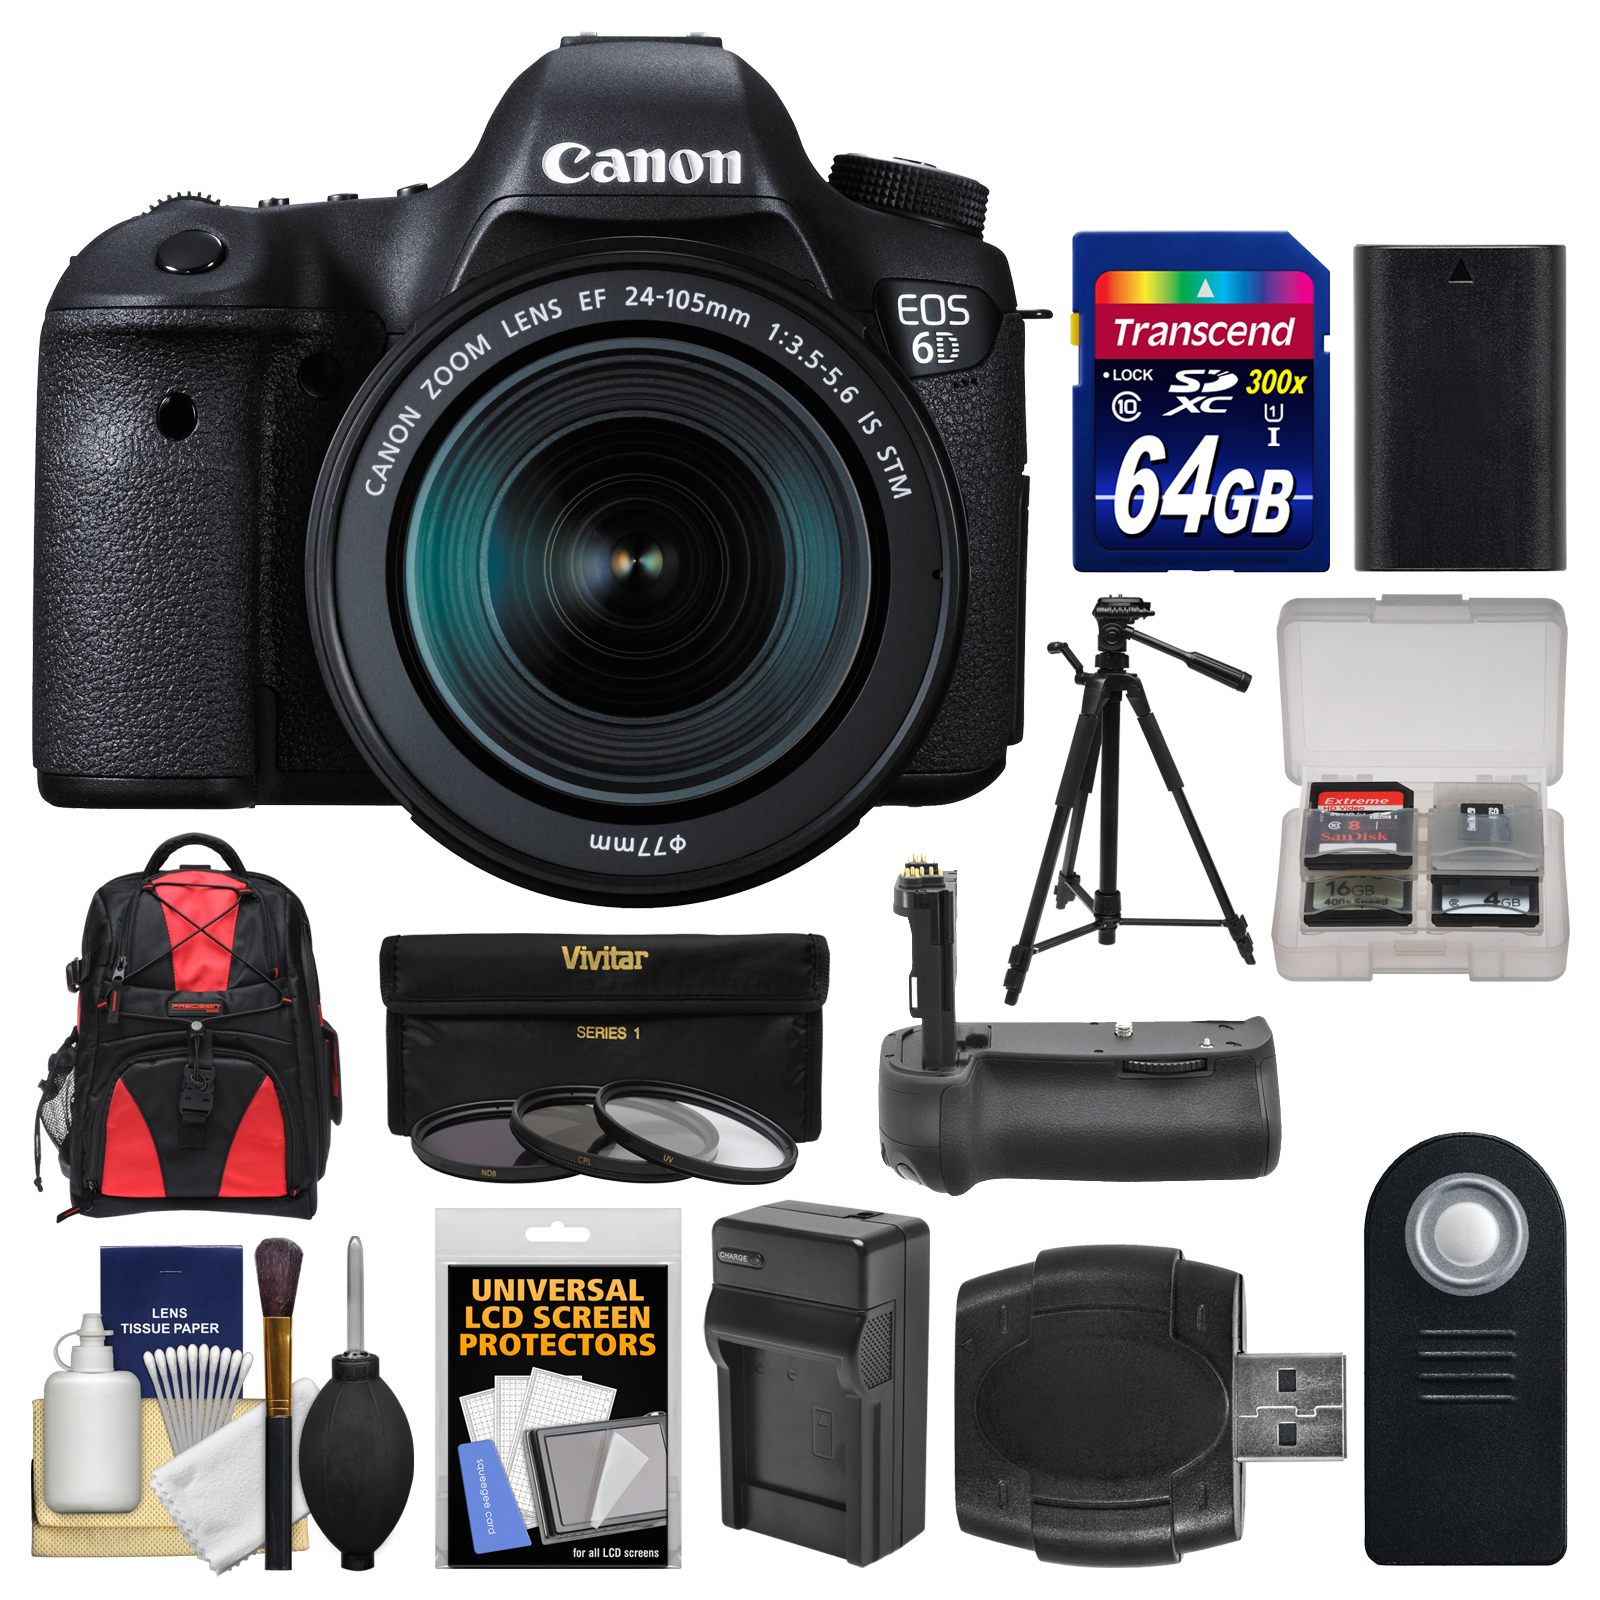 Canon EOS 6D Digital SLR Camera Body & EF 24-105mm IS STM Lens with 64GB Card + Backpack + Battery & Charger + Grip +... by Canon